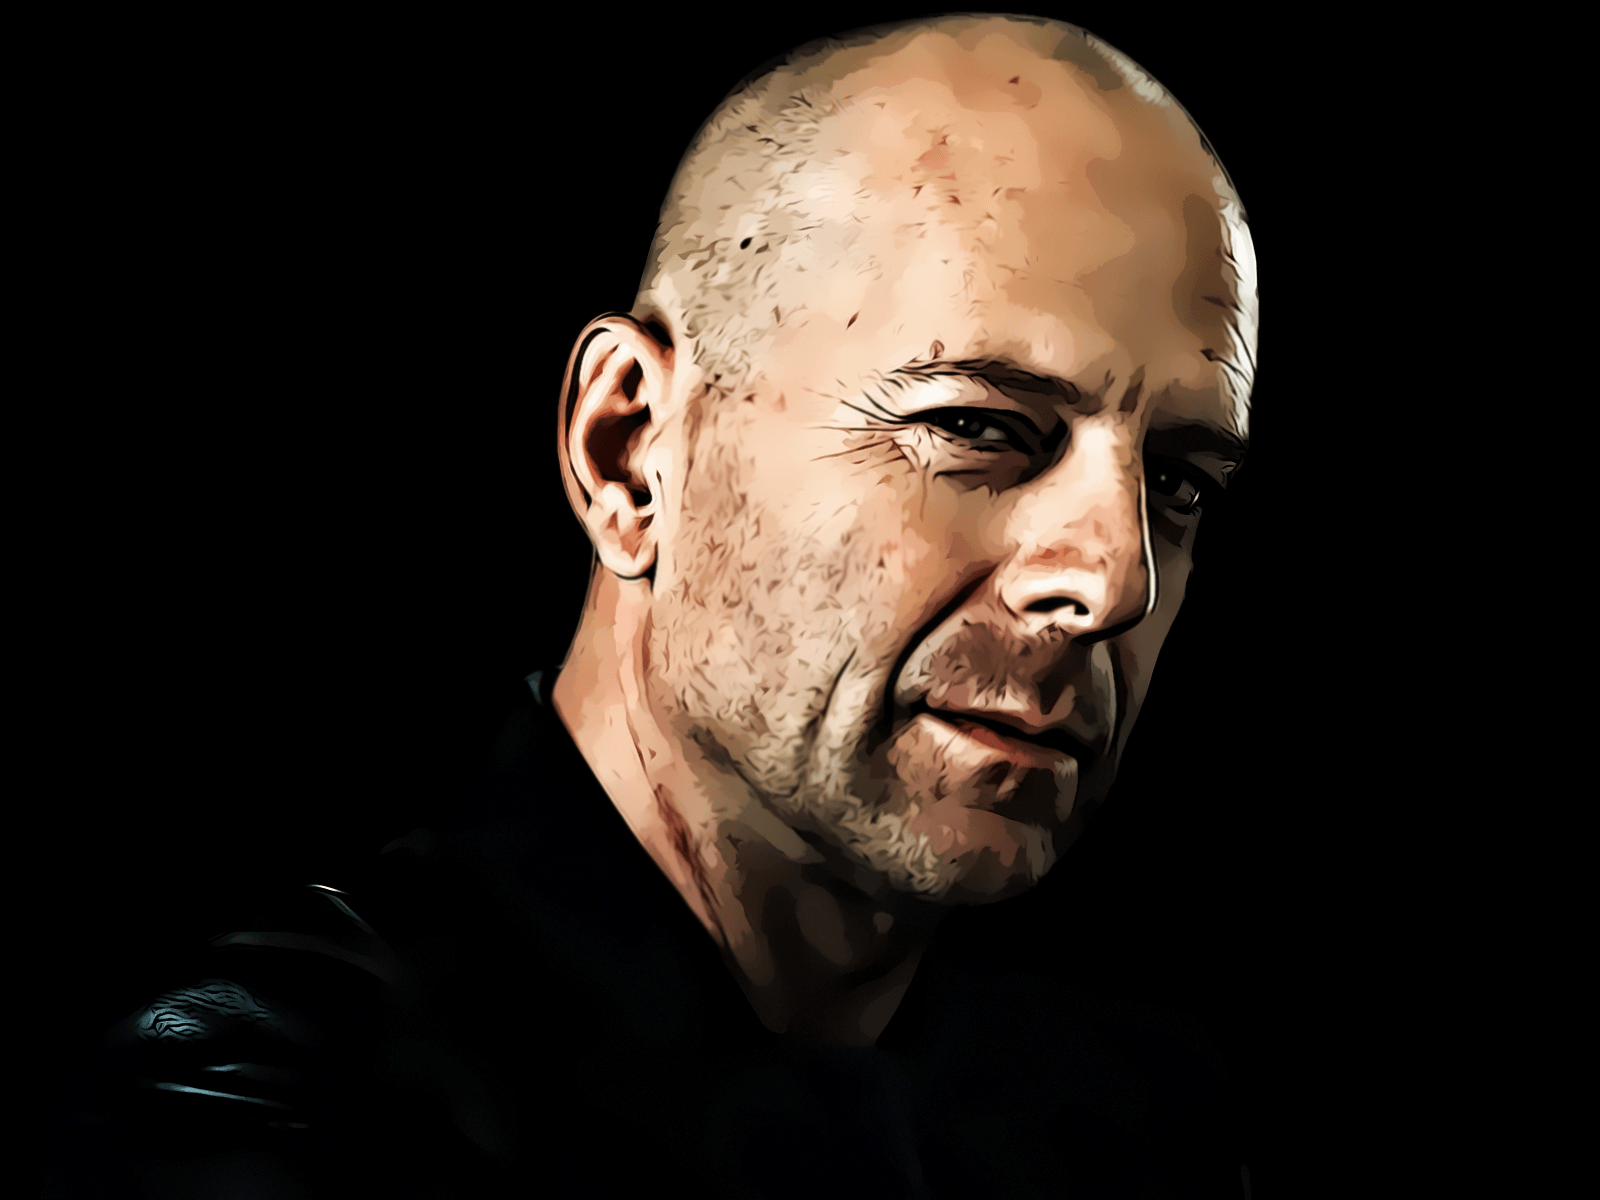 Bruce Willis #764570 | Full HD Widescreen wallpapers for desktop ...